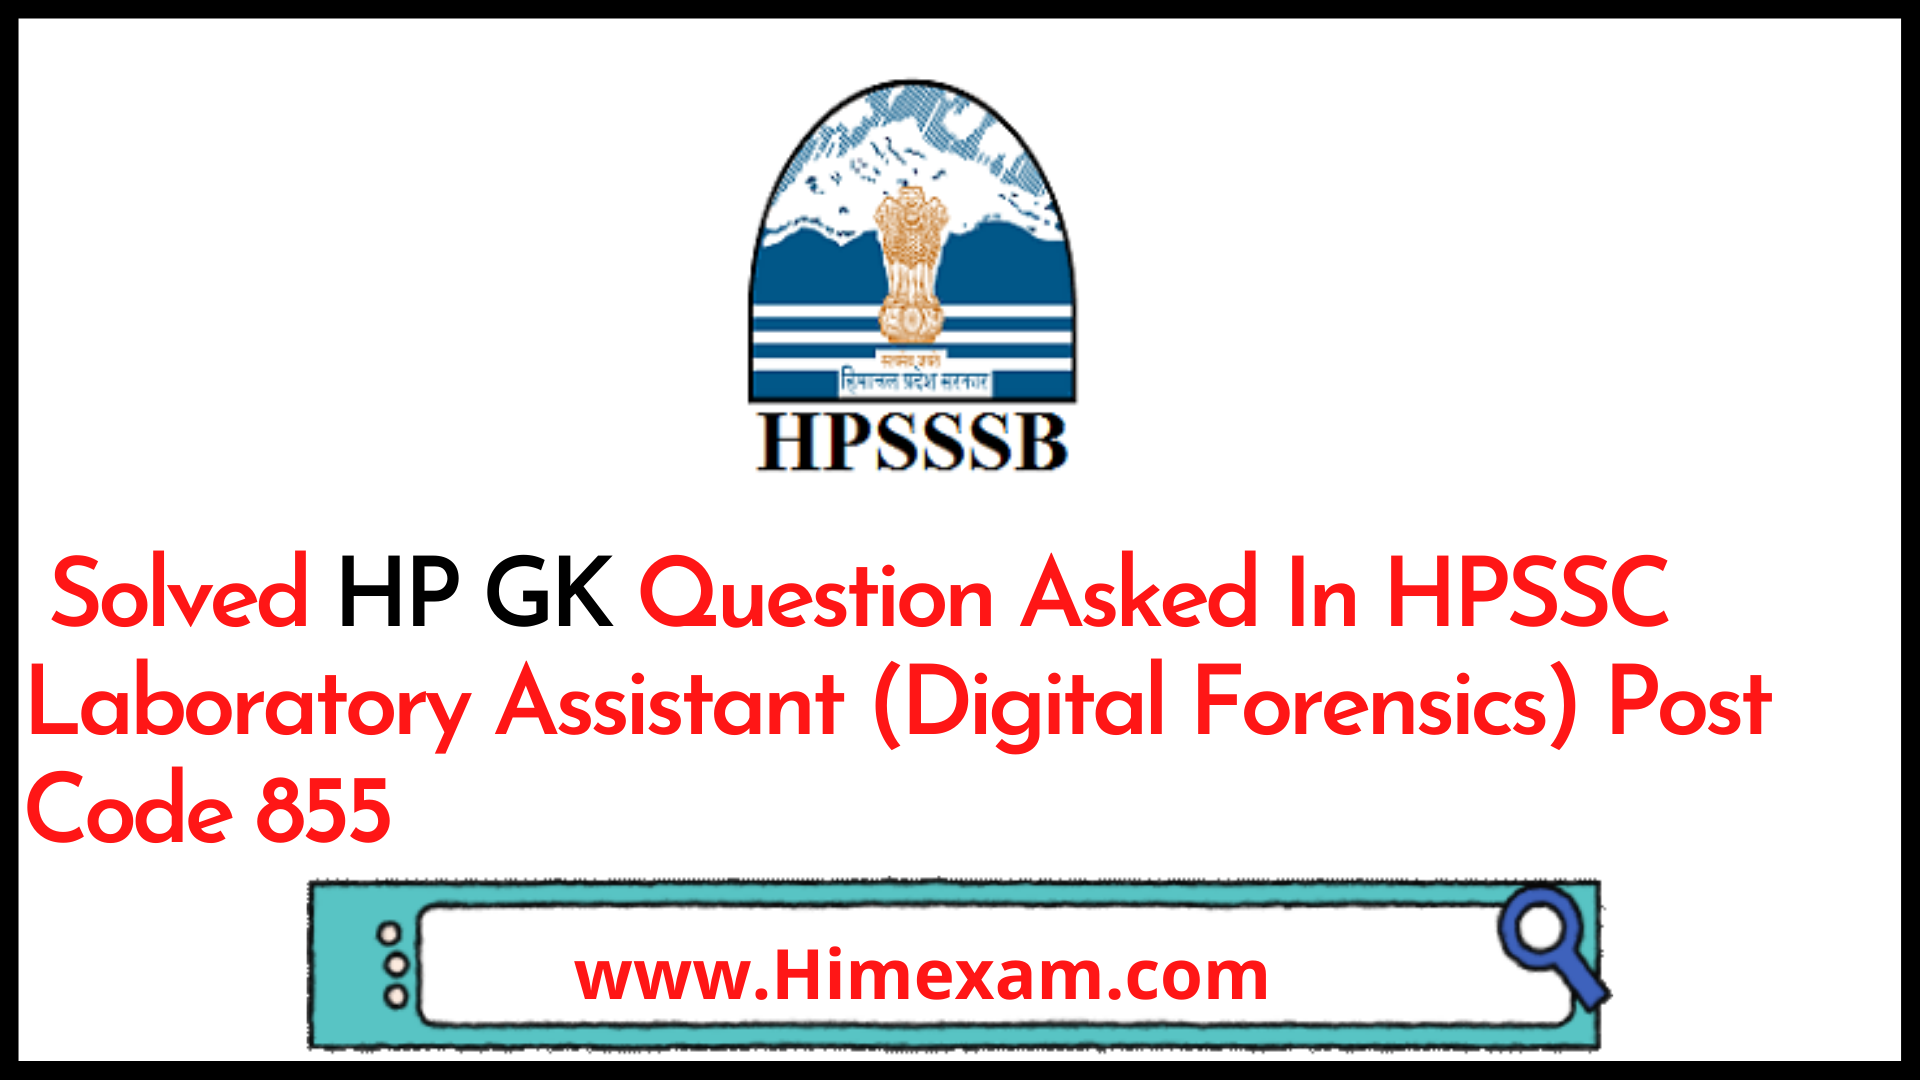 Solved HP GK Question Asked In HPSSC Laboratory Assistant (Digital Forensics) Post Code 855